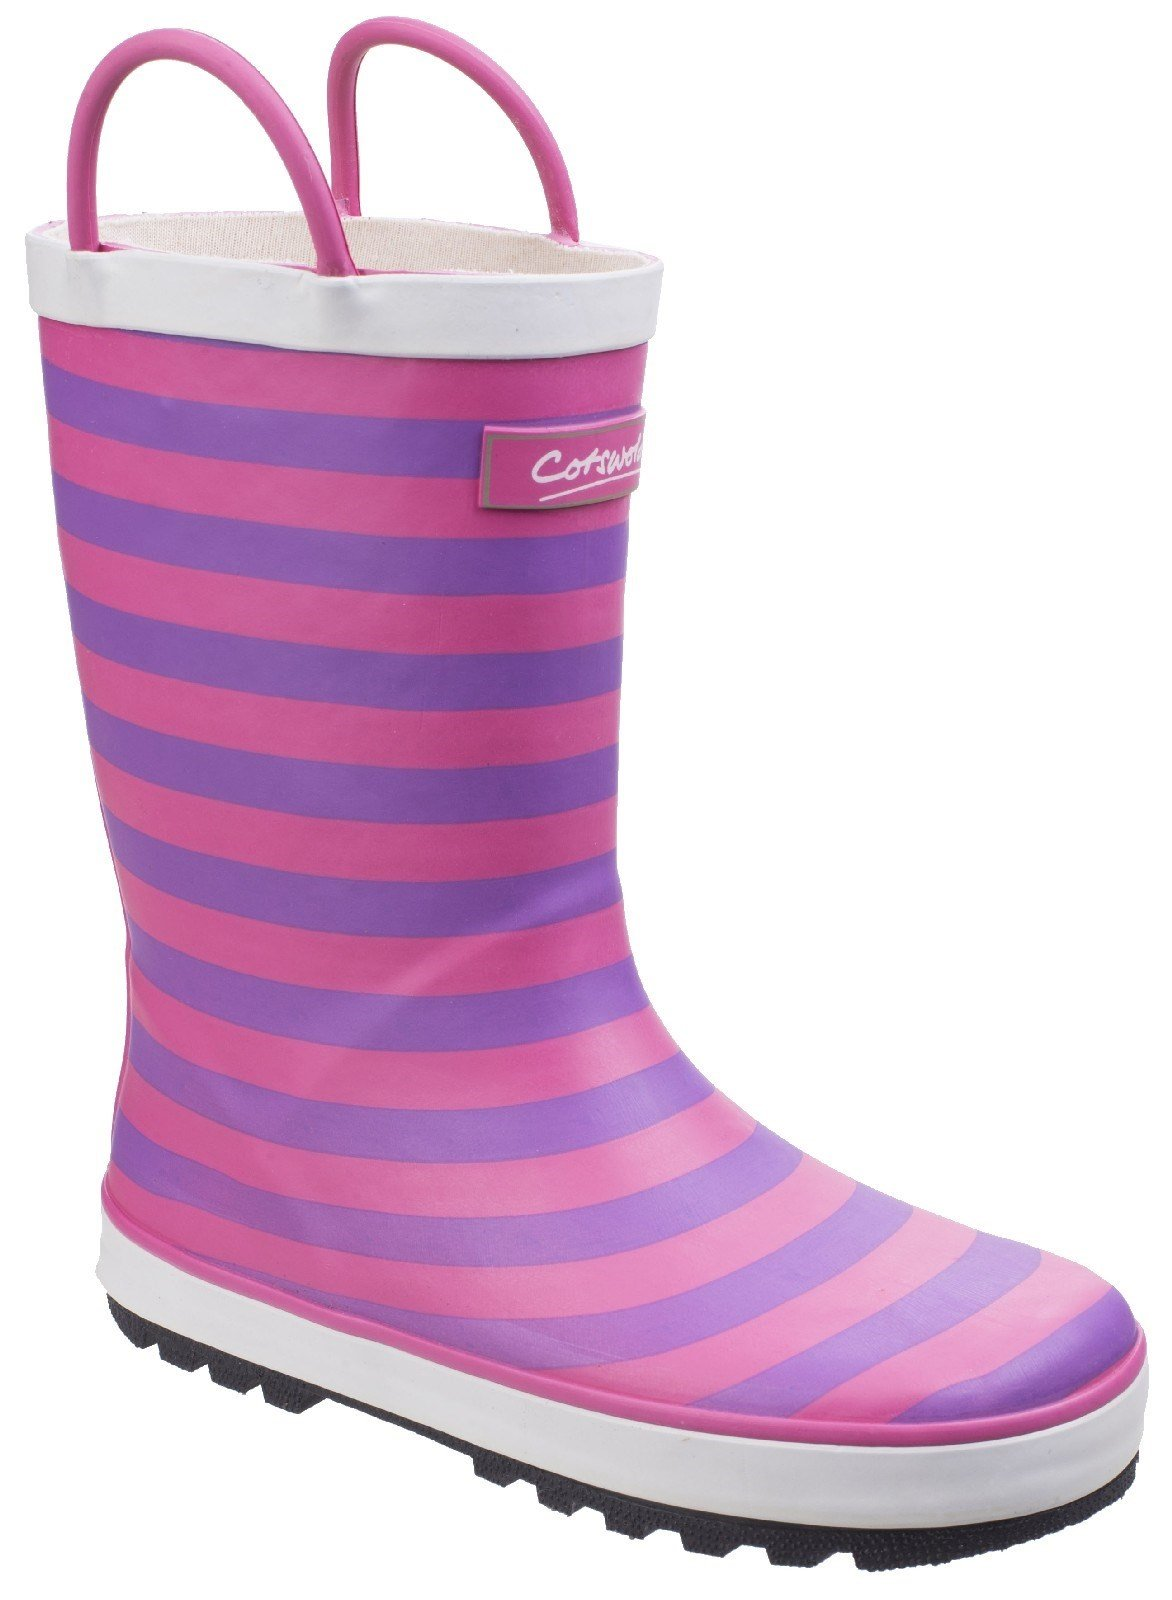 Cotswold Kids Captain Stripy Wellies Boot Blue 25545 - Pink 4.5